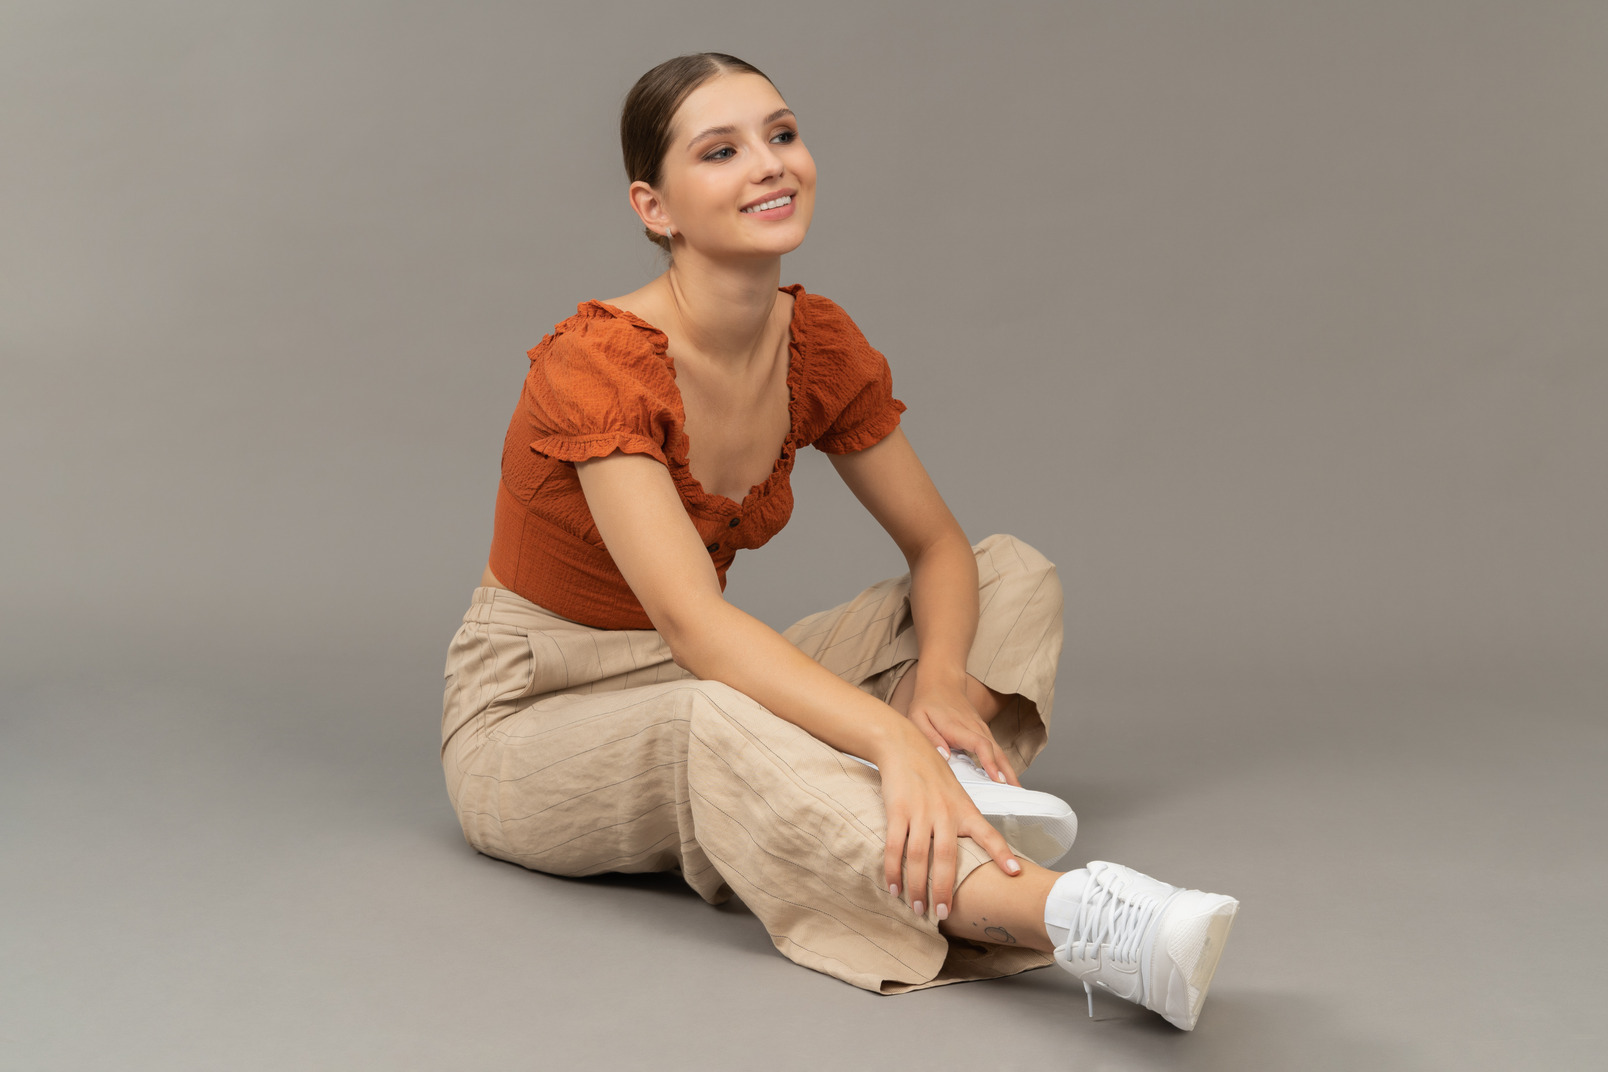 Young woman sits on floor